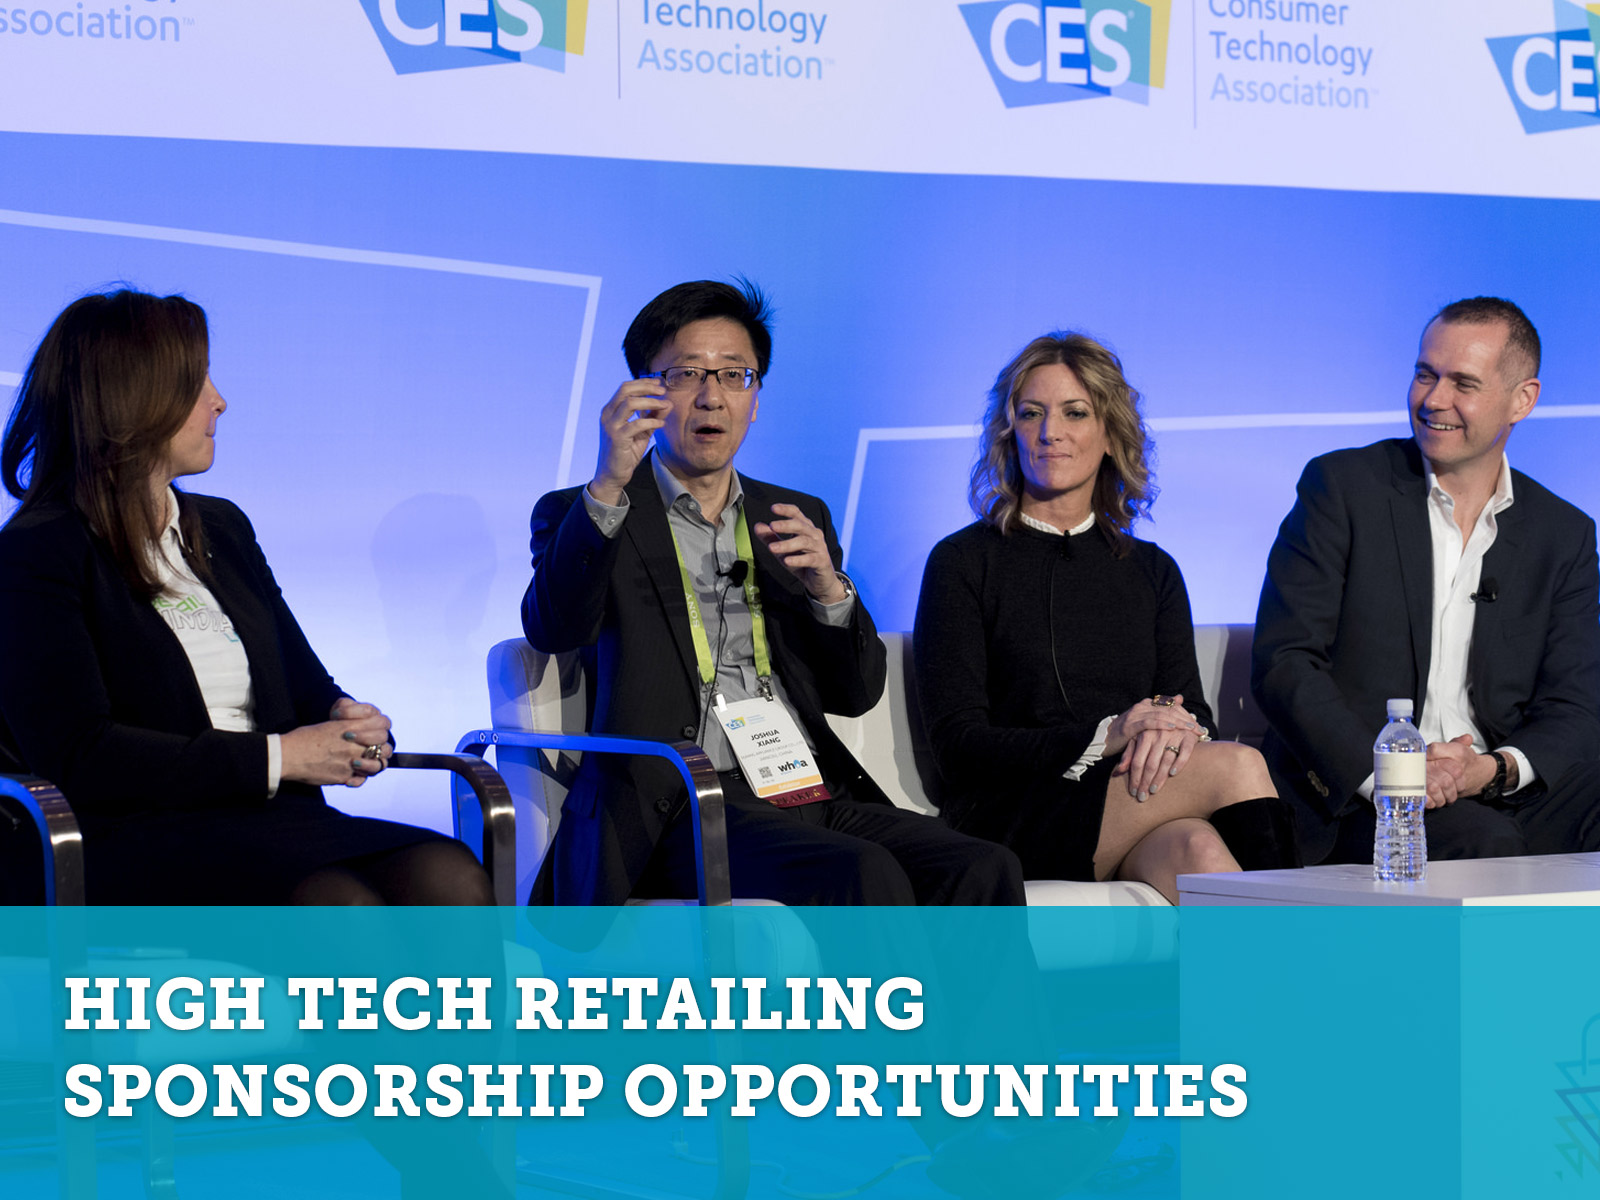 Sponsorship Opportunities at High-Tech Retailing